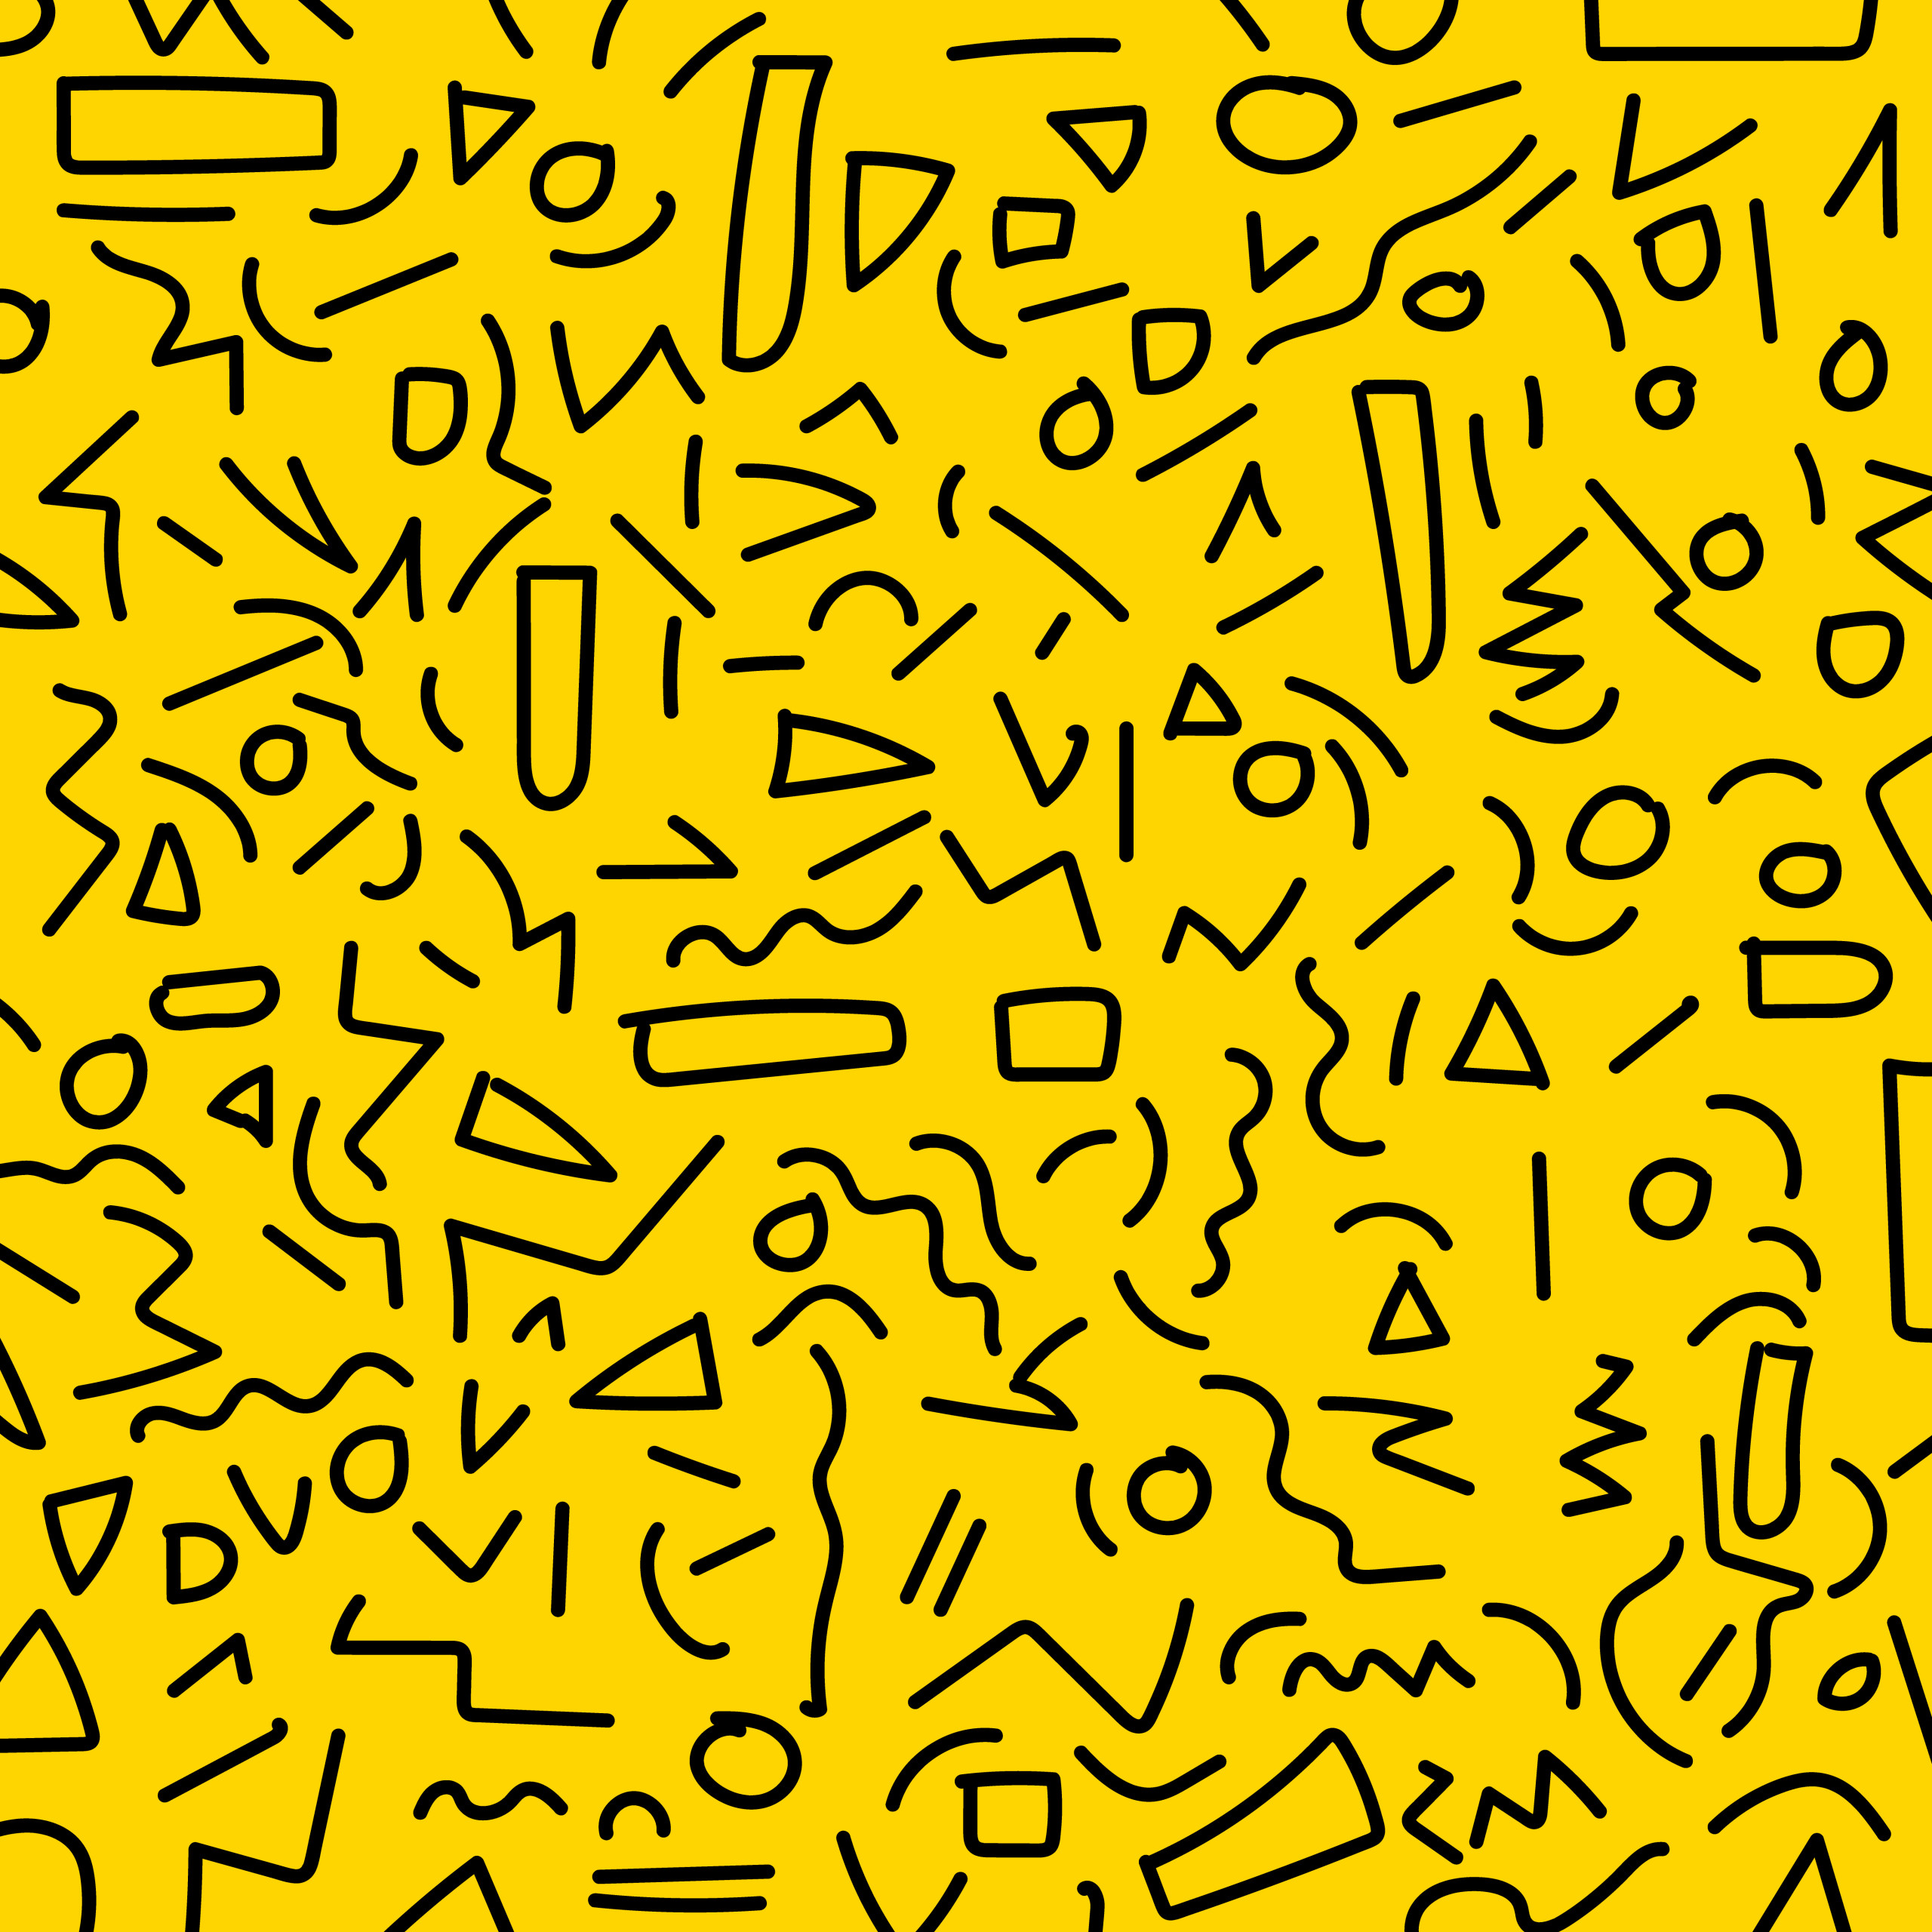 hand draw black geometric memphis pattern 80 s 90 s styles on yellow background